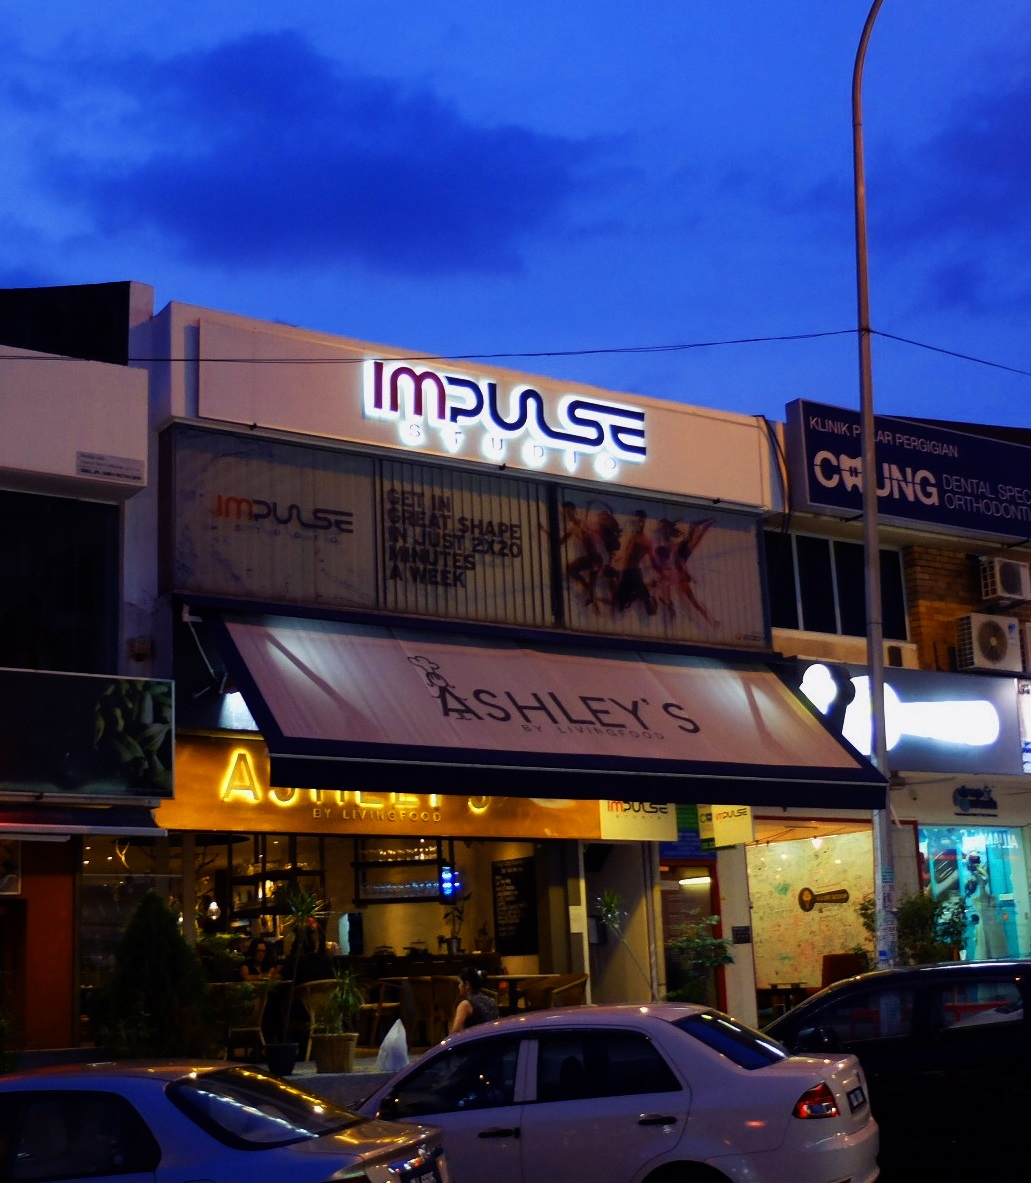 Impulse Studio Bangsar